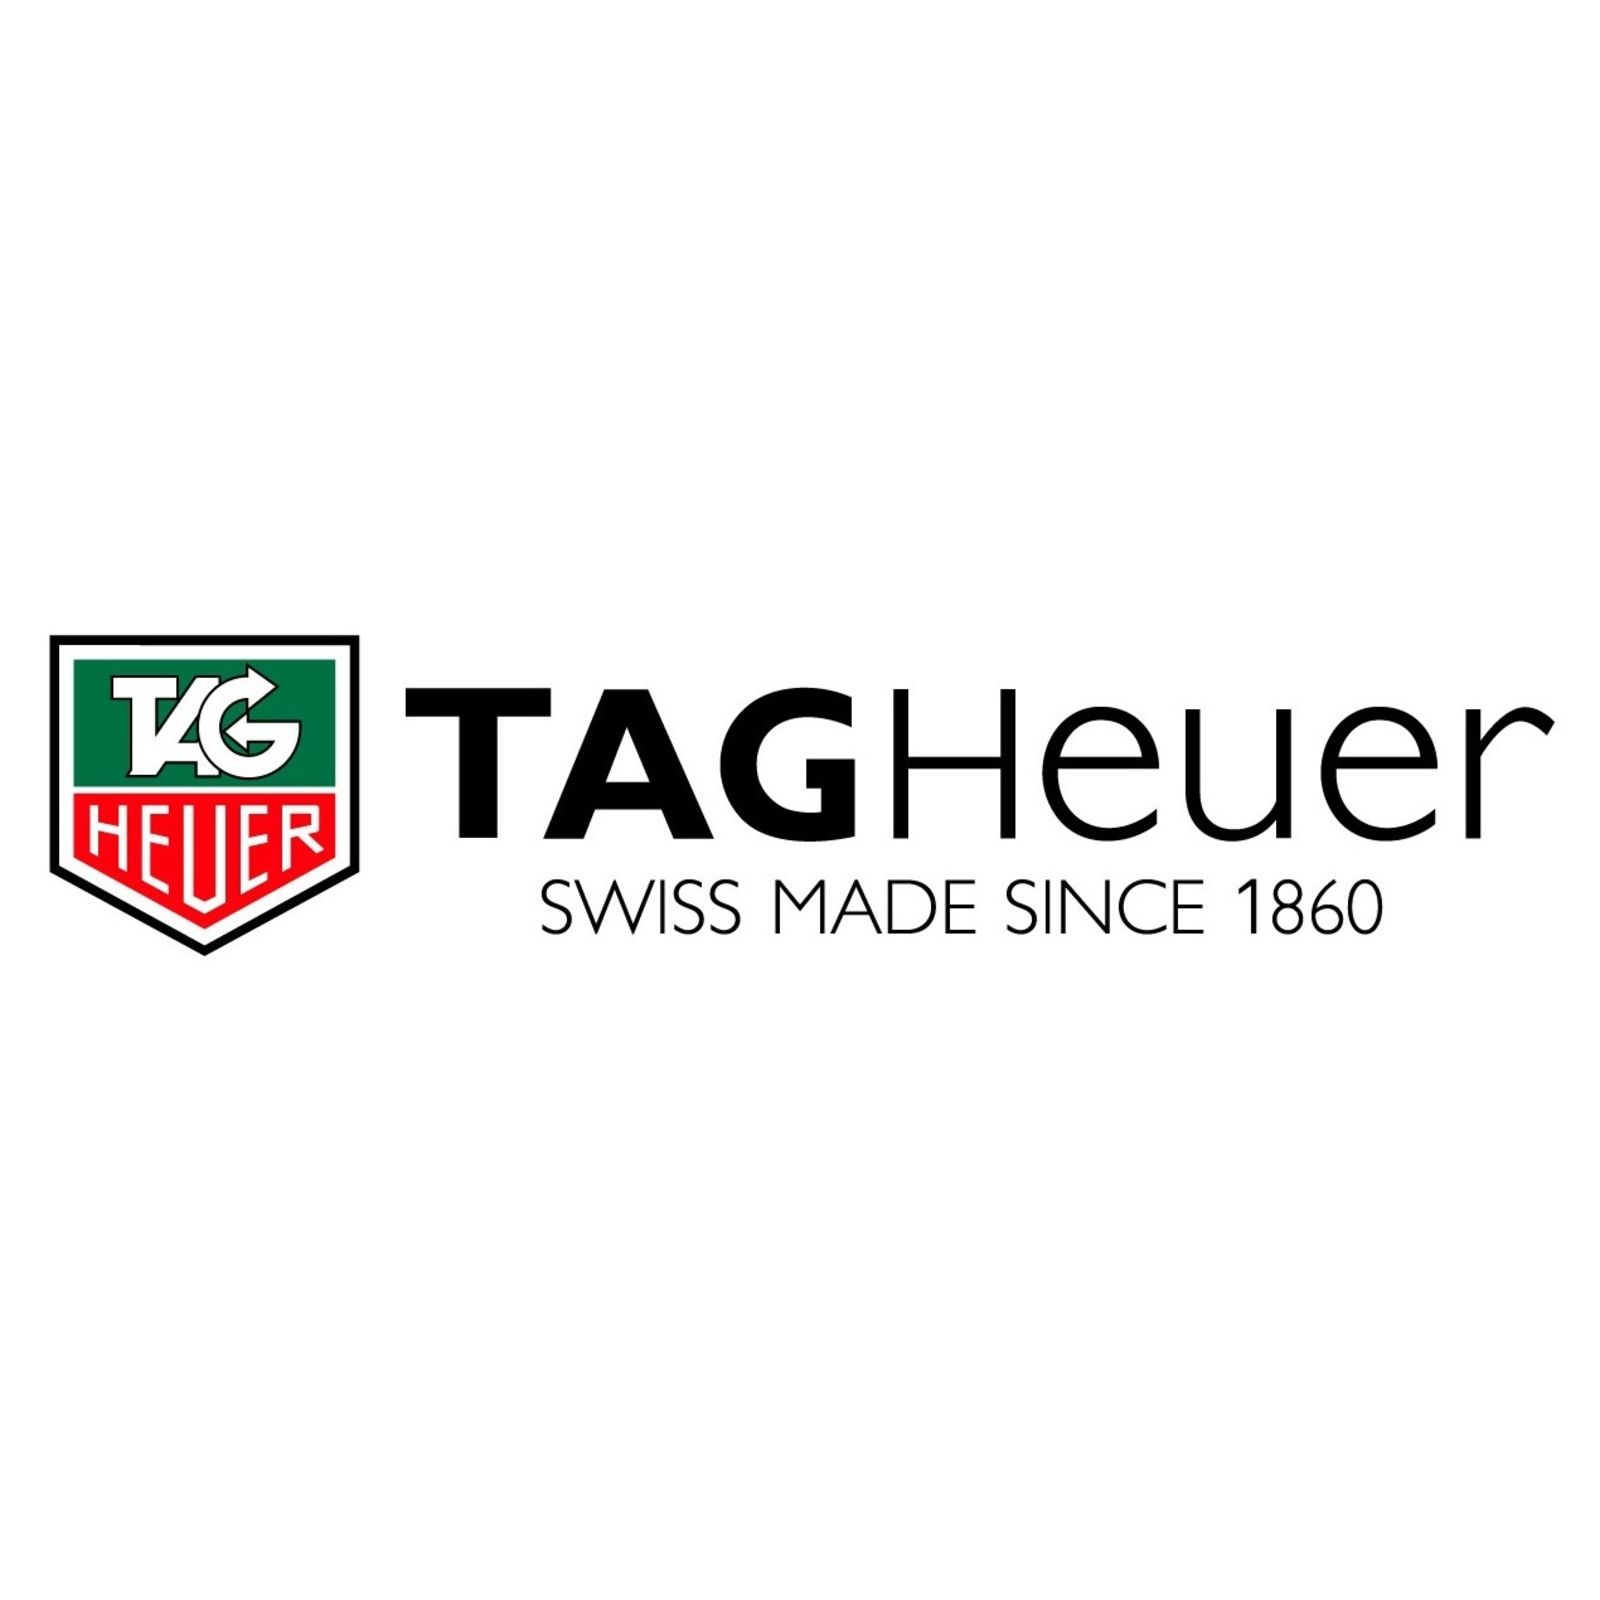 TAGHeuer (Image 1)